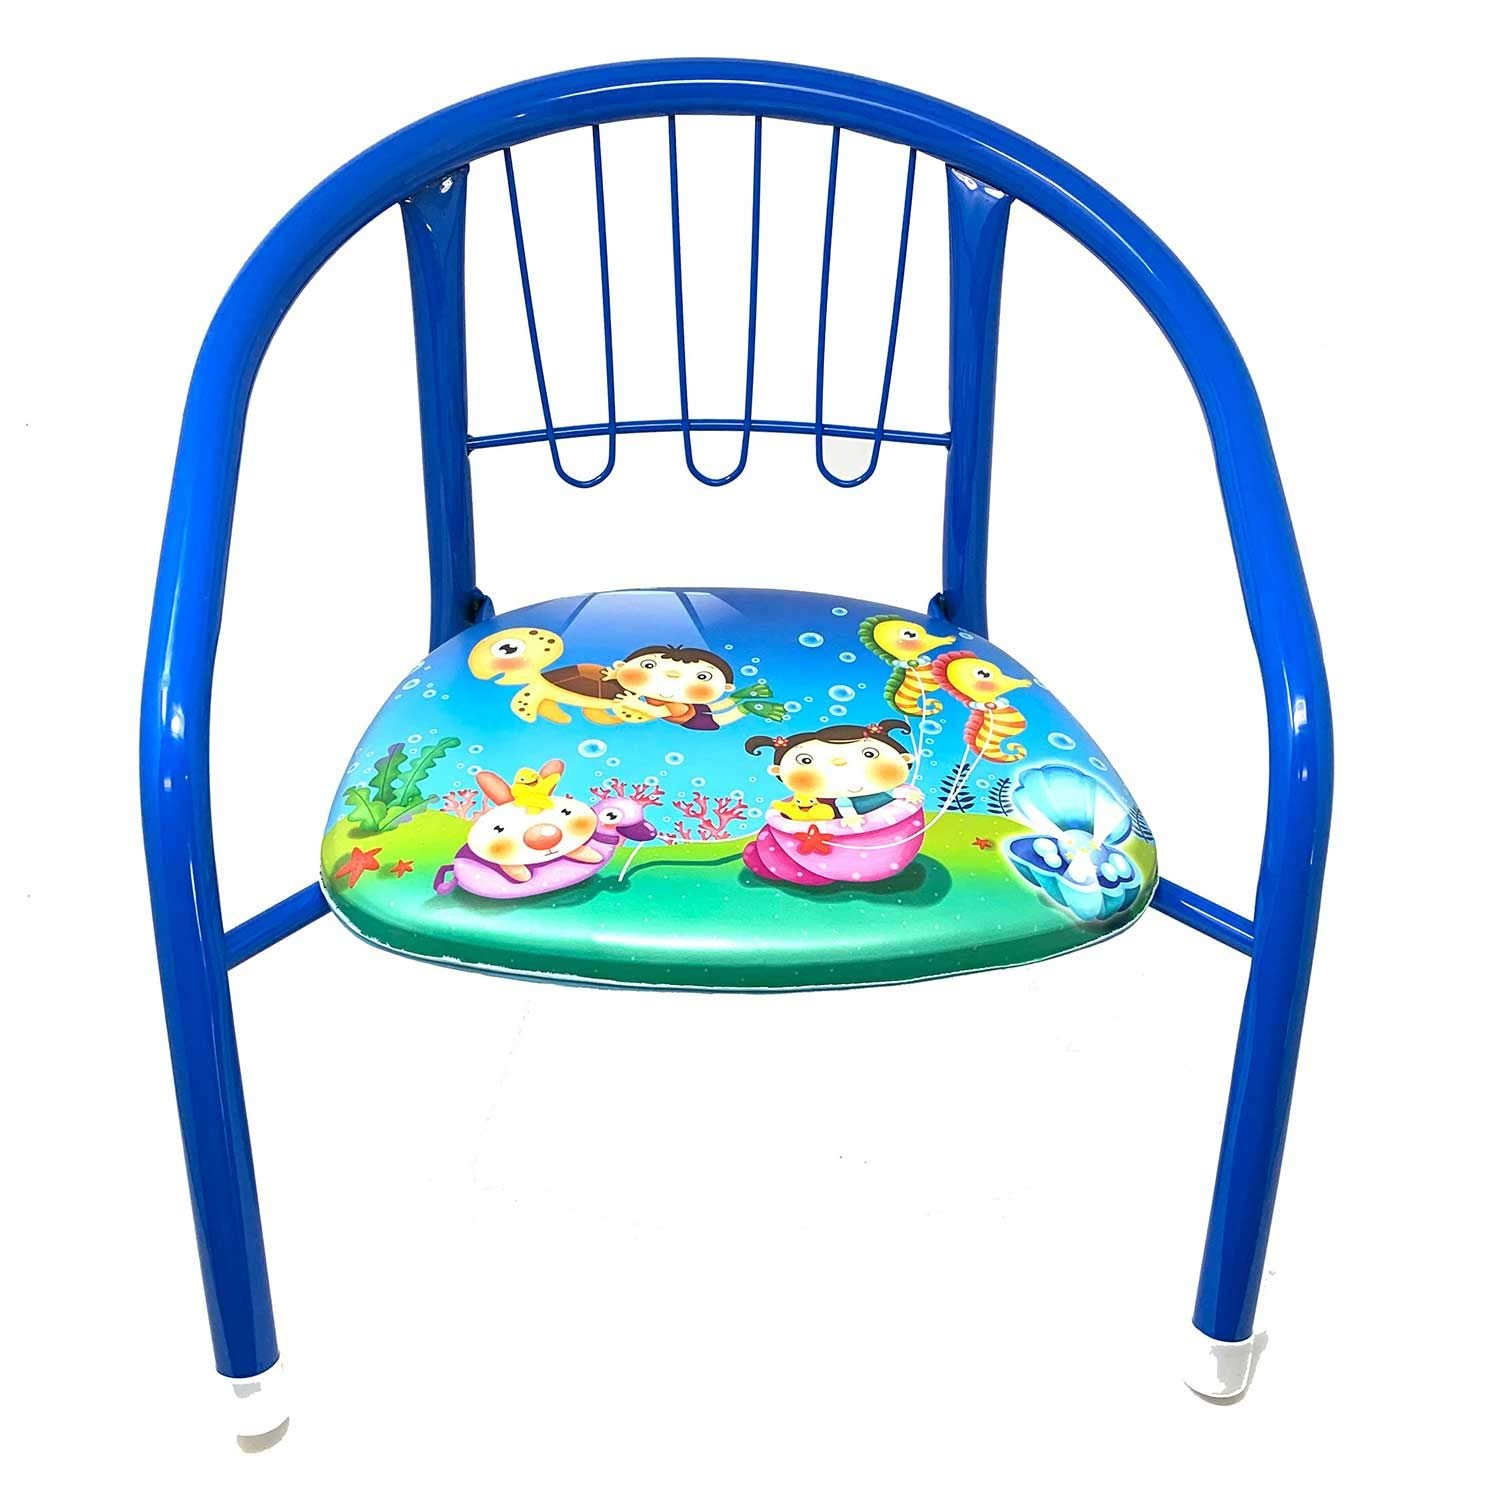 32 Pc Kids Toddler Metal Chairs with Soft Cushion Bottom,Squeaky Fun  Sound-Indoor Outdoor Chair for Boys Girls-Home Garden Playhouse Preschool  Birthday